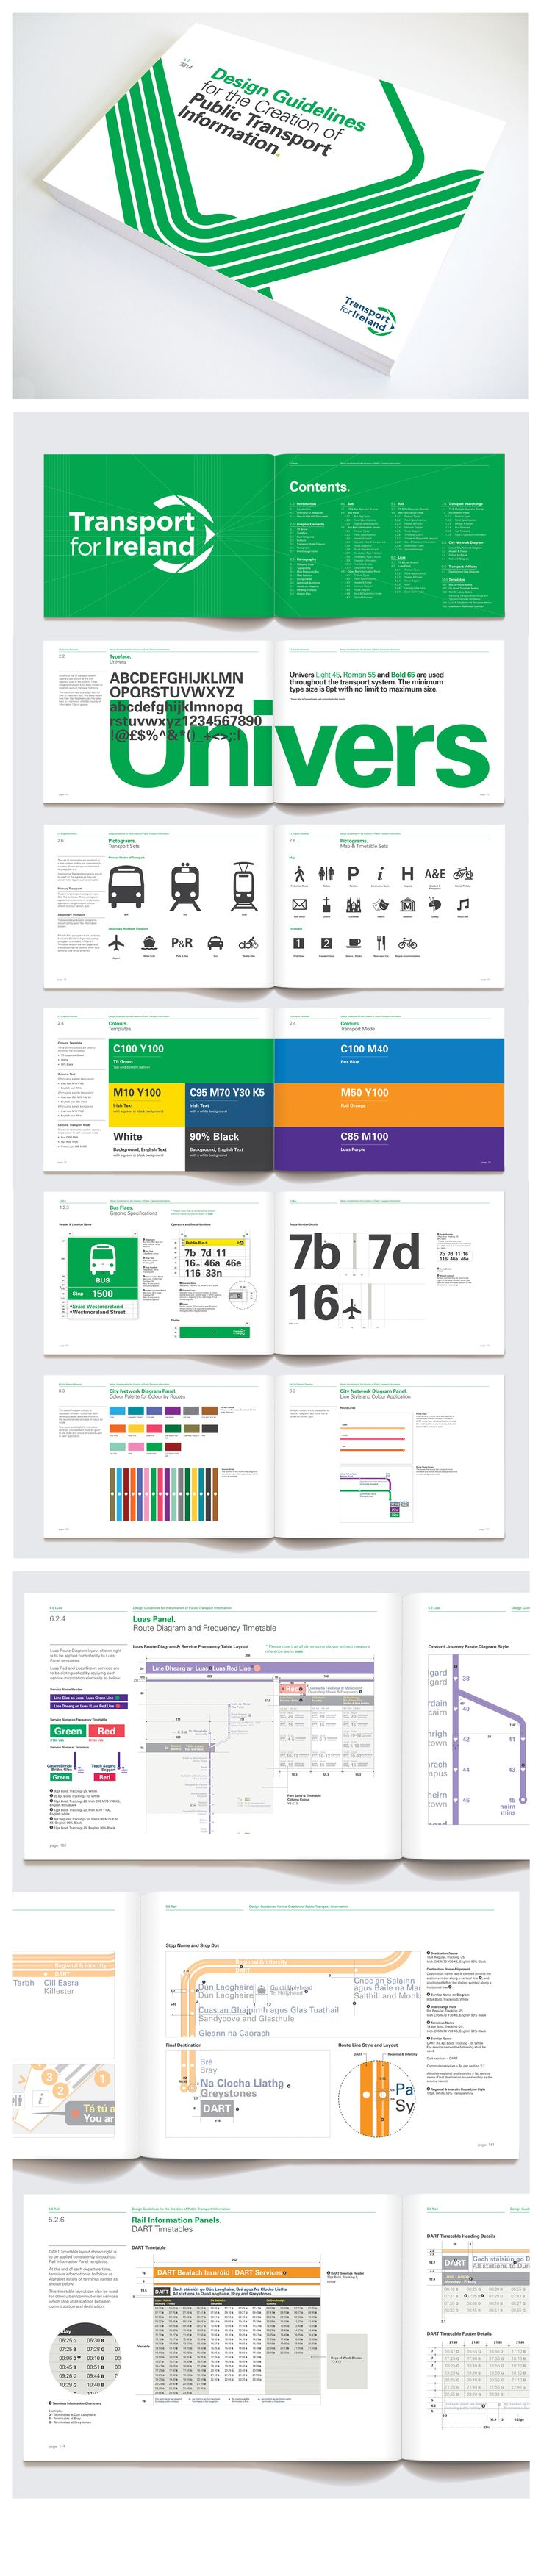 Transport for Ireland Design guidelines for the creation of public transport information by fwdesign #Wayfinding Design Guidelines, Transport Design, Wayfinding, Signage, Mapping, Infographics, Ireland, Dual Language www.fwdesign.com